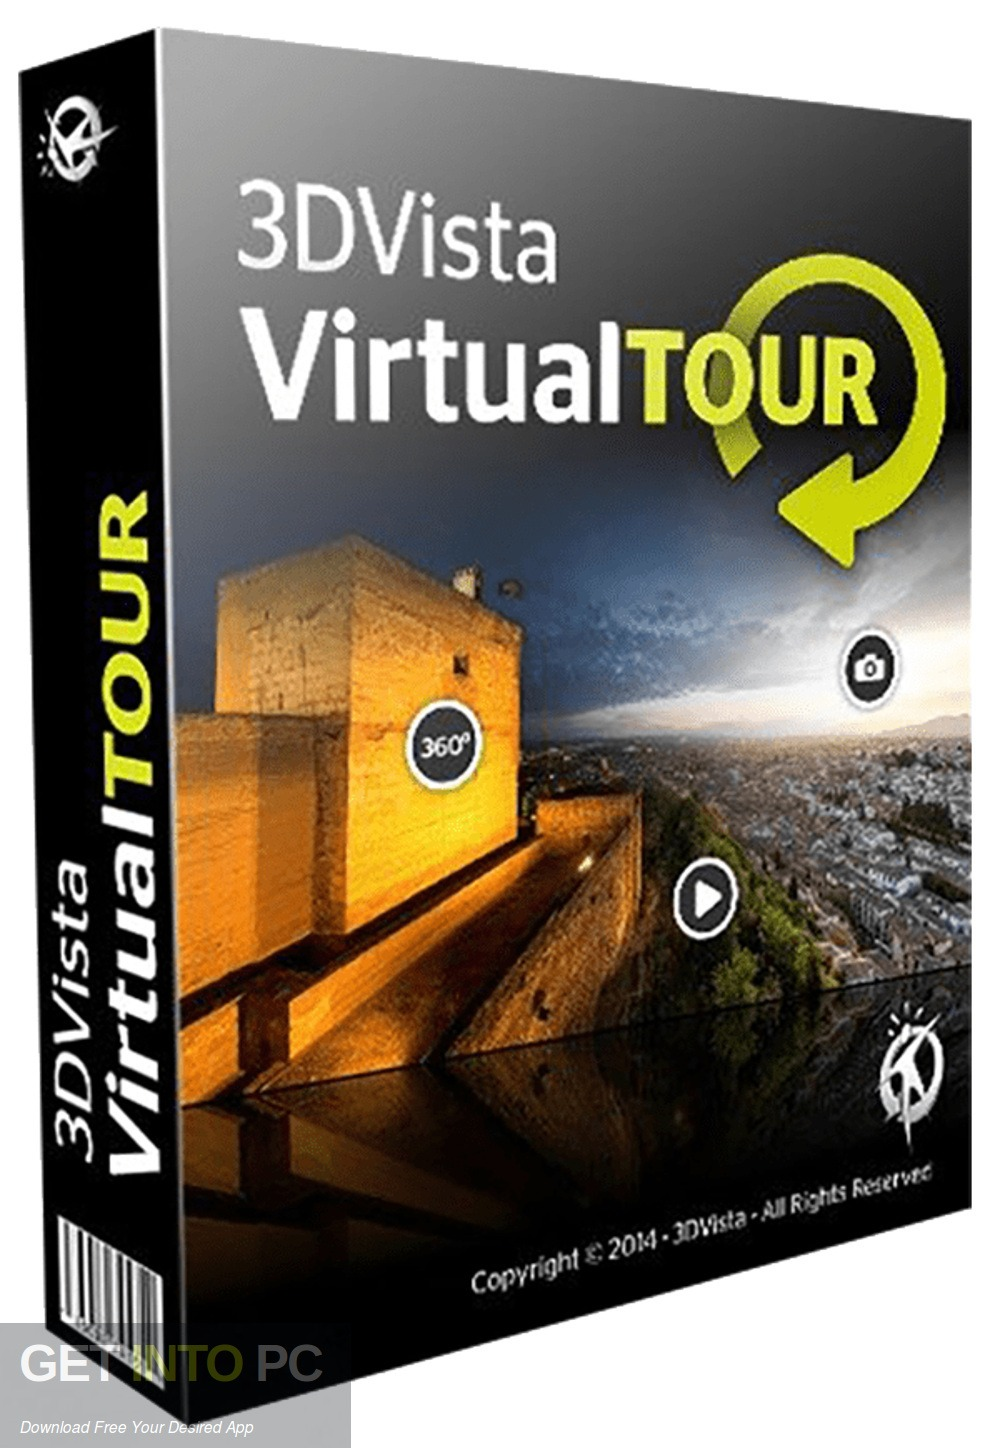 3DVista Virtual Tour Suite 2019 Free Download - GetintoPC.com